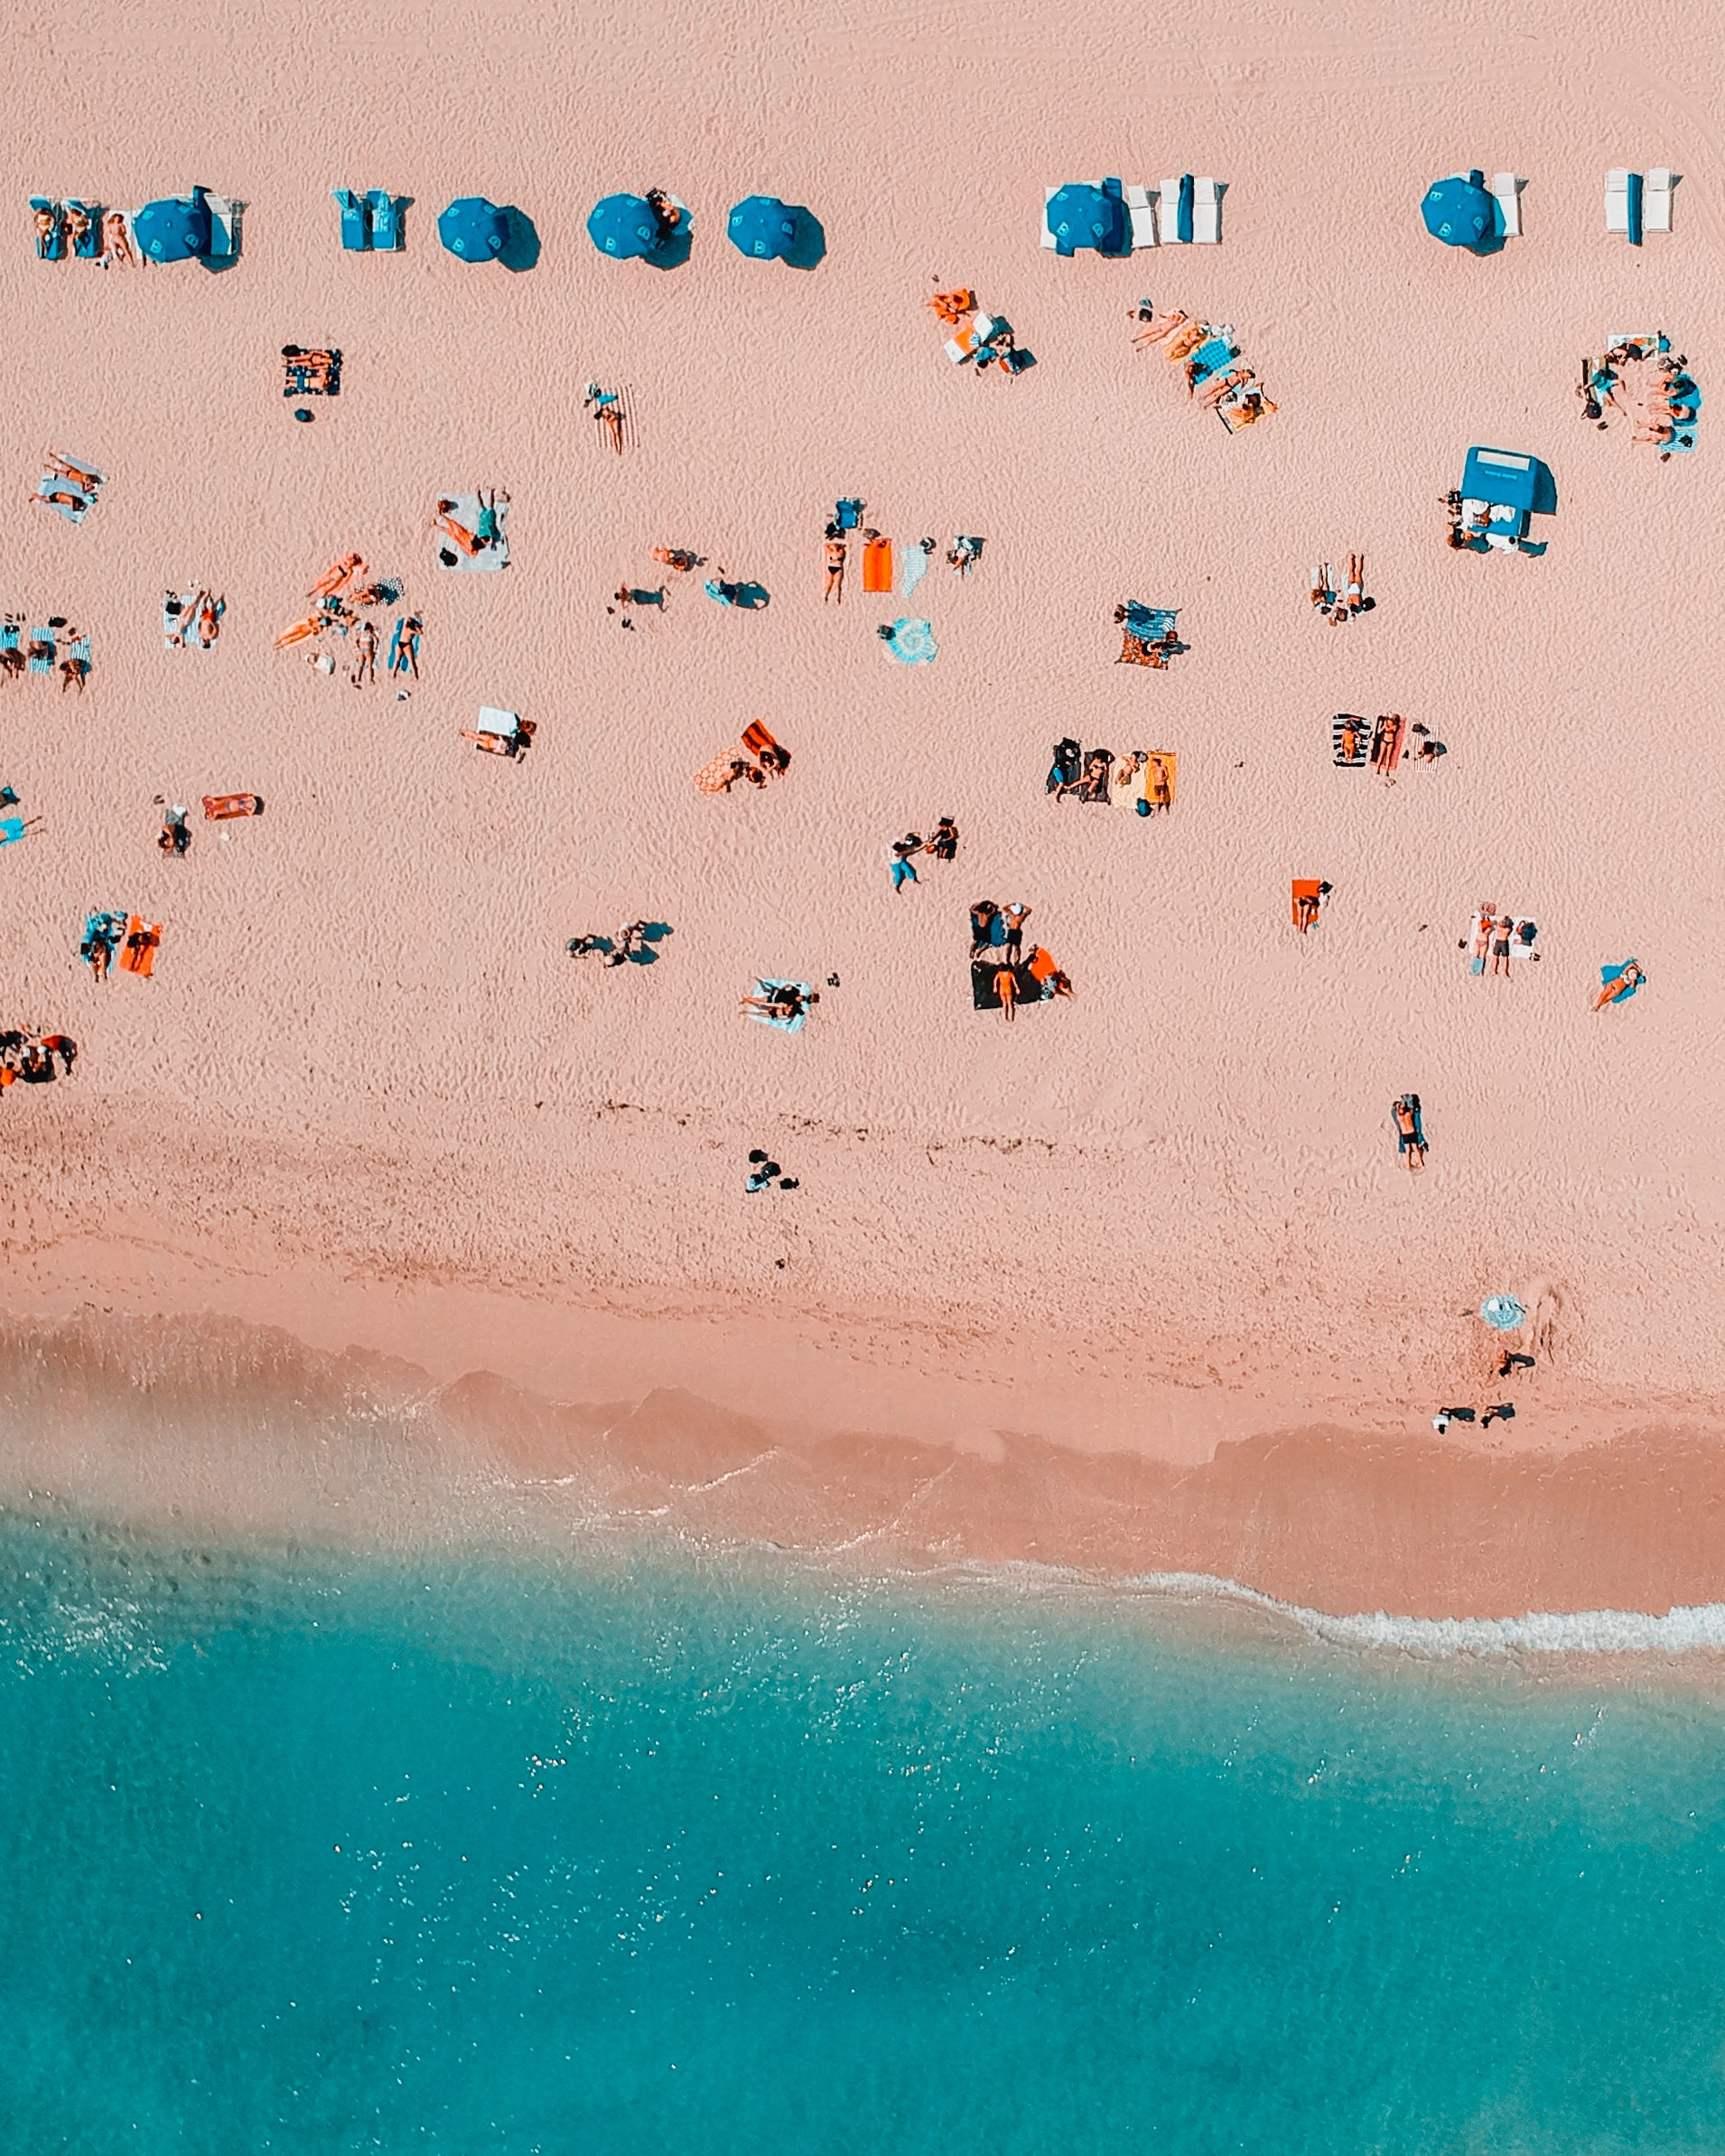 bird's-eye view photography of people in seashore